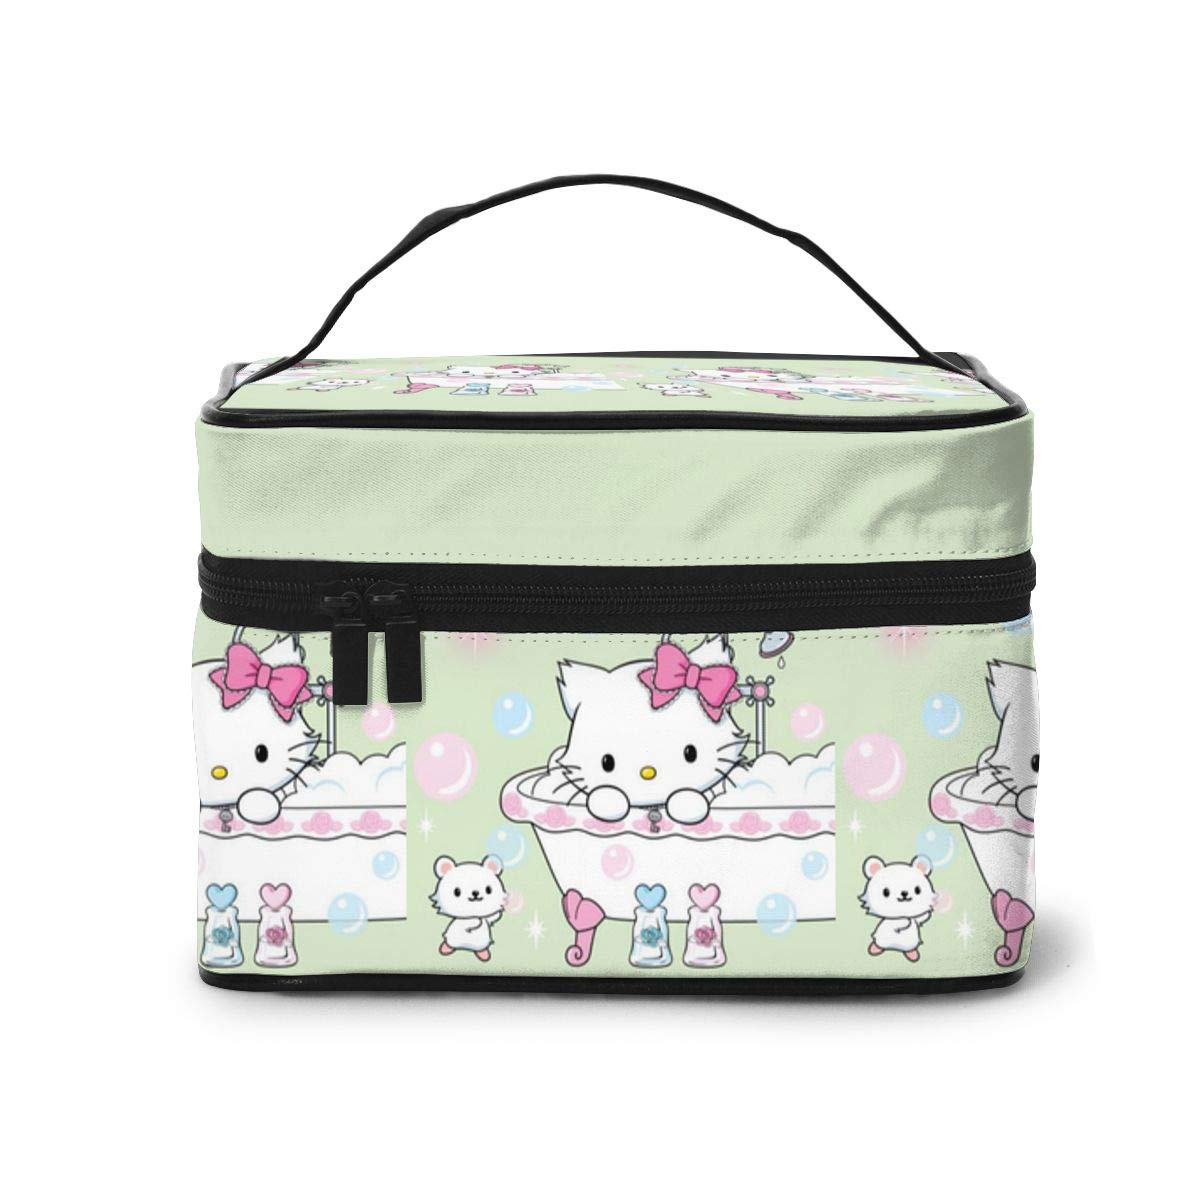 Makeup Bag, Charmmy Kitty Travel Portable Cosmetic Bag Large Pouch Mesh Brush Organizer Toiletry Bag for Women Girls